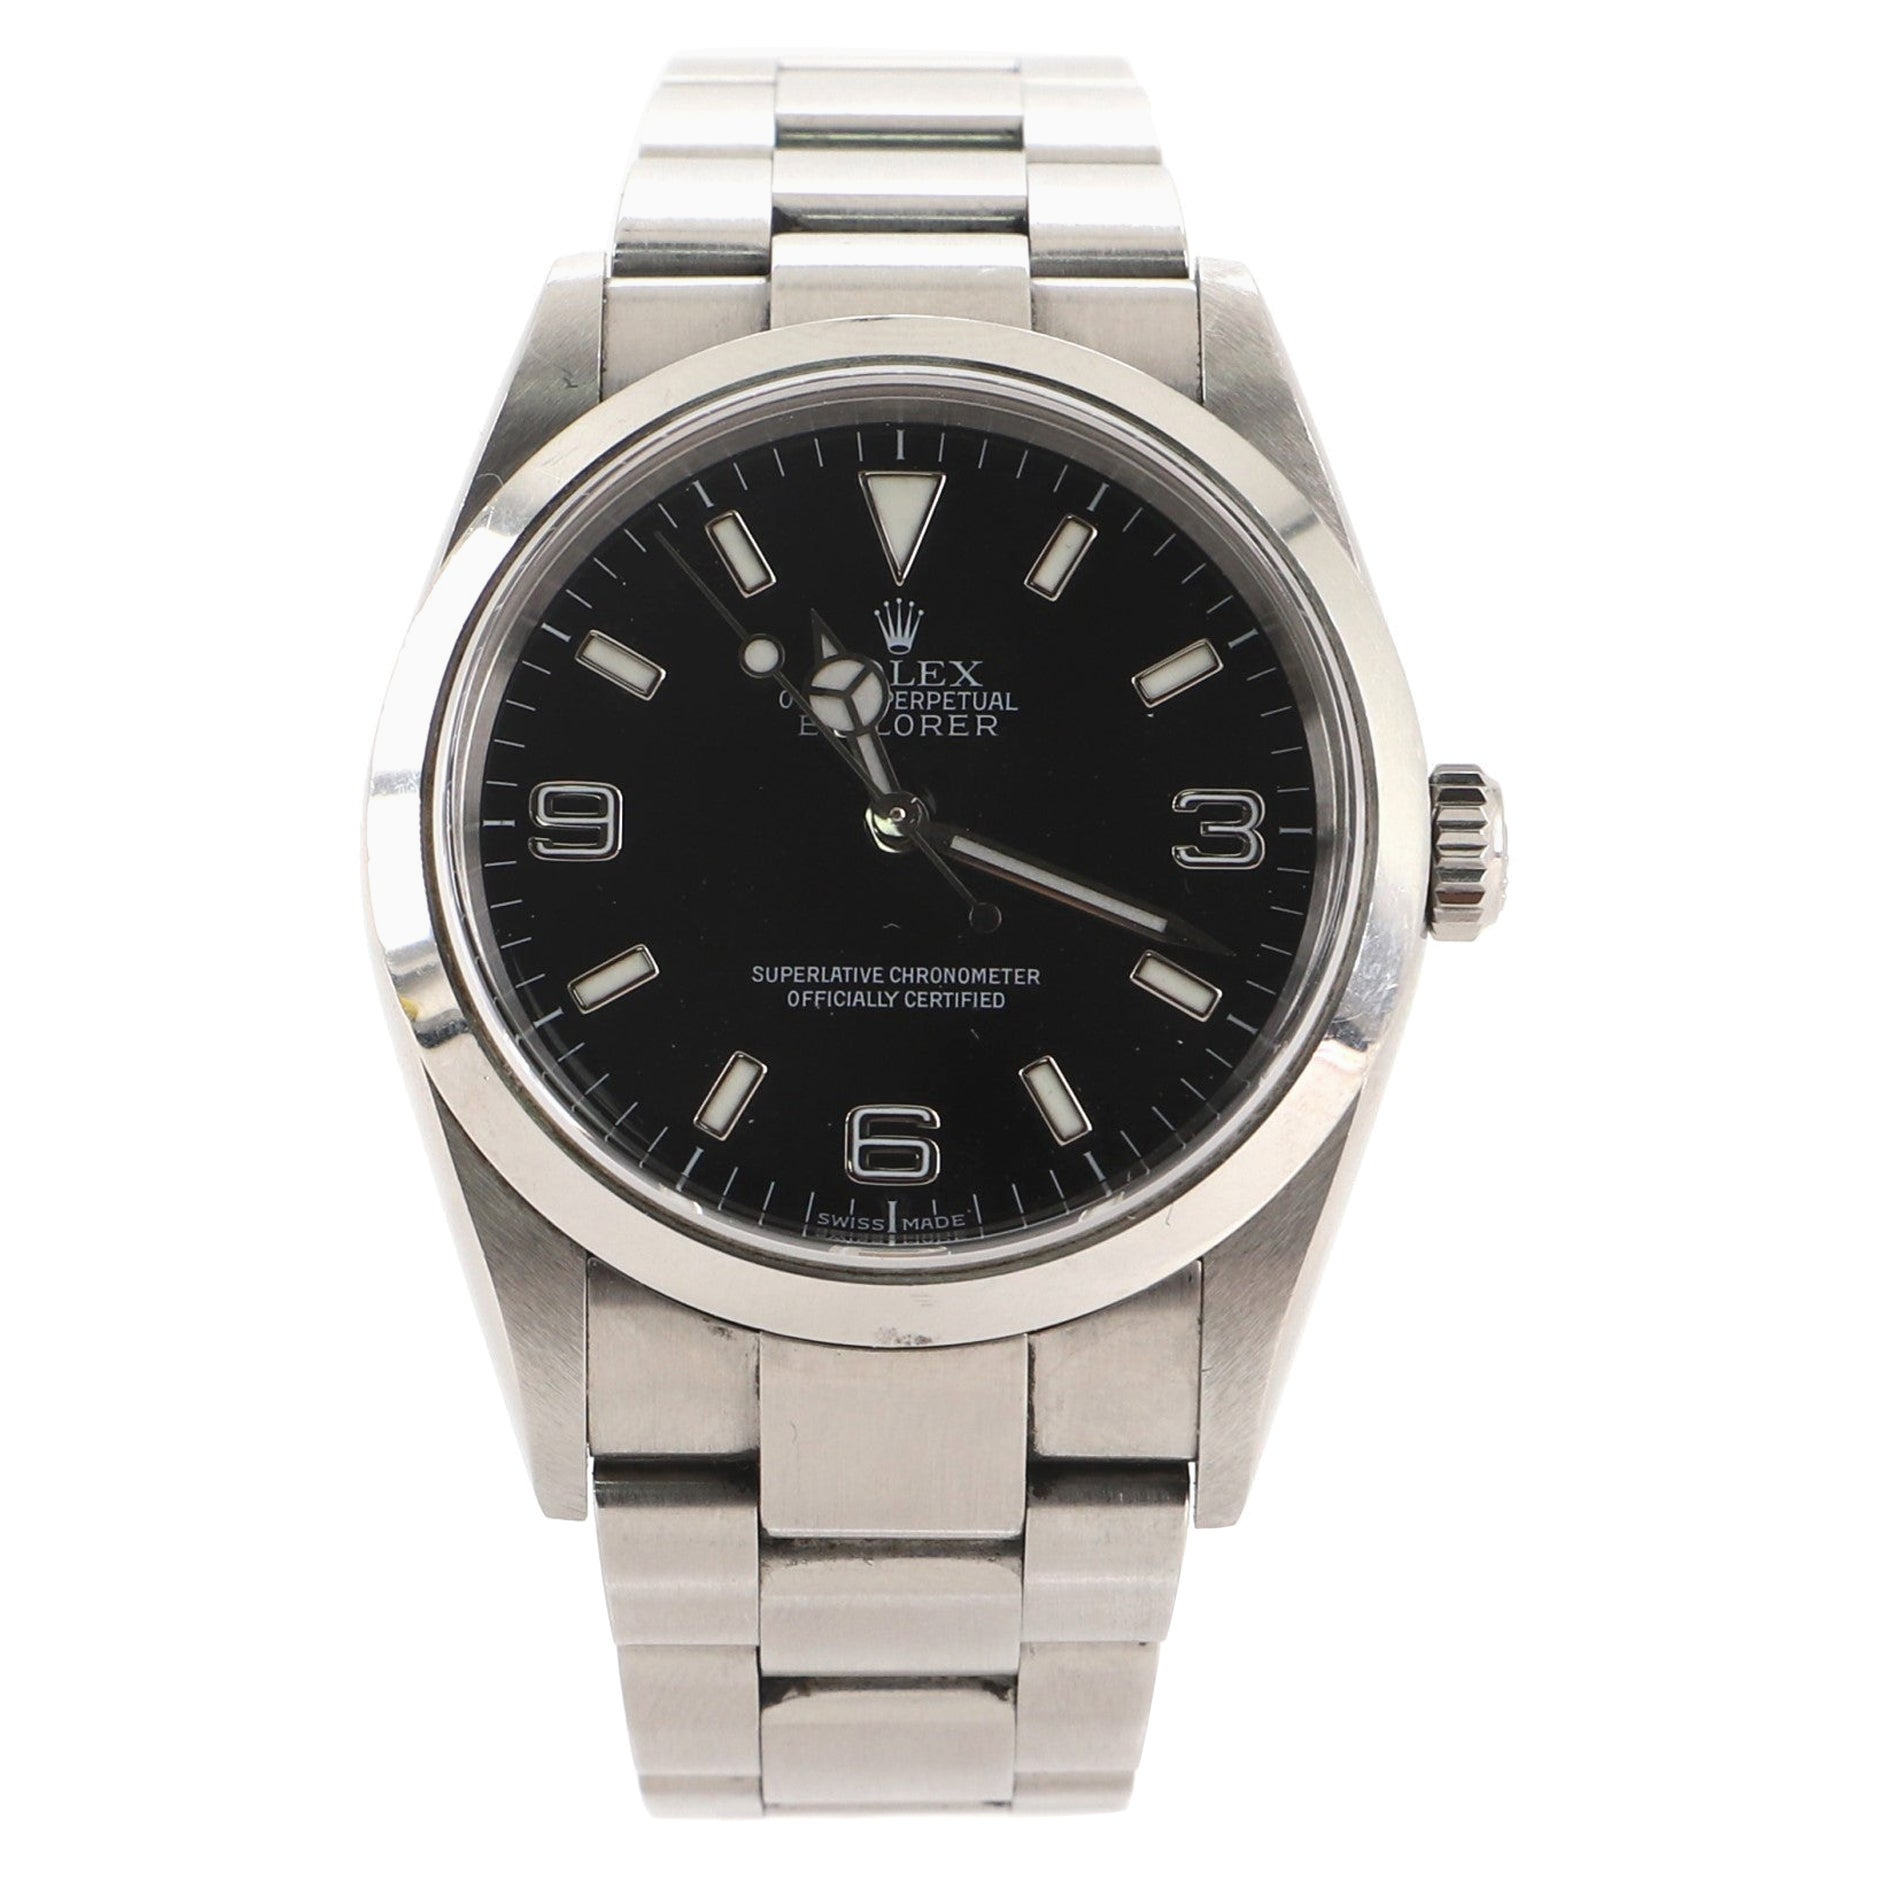 Rolex Oyster Perpetual Explorer Automatic Watch Stainless Steel